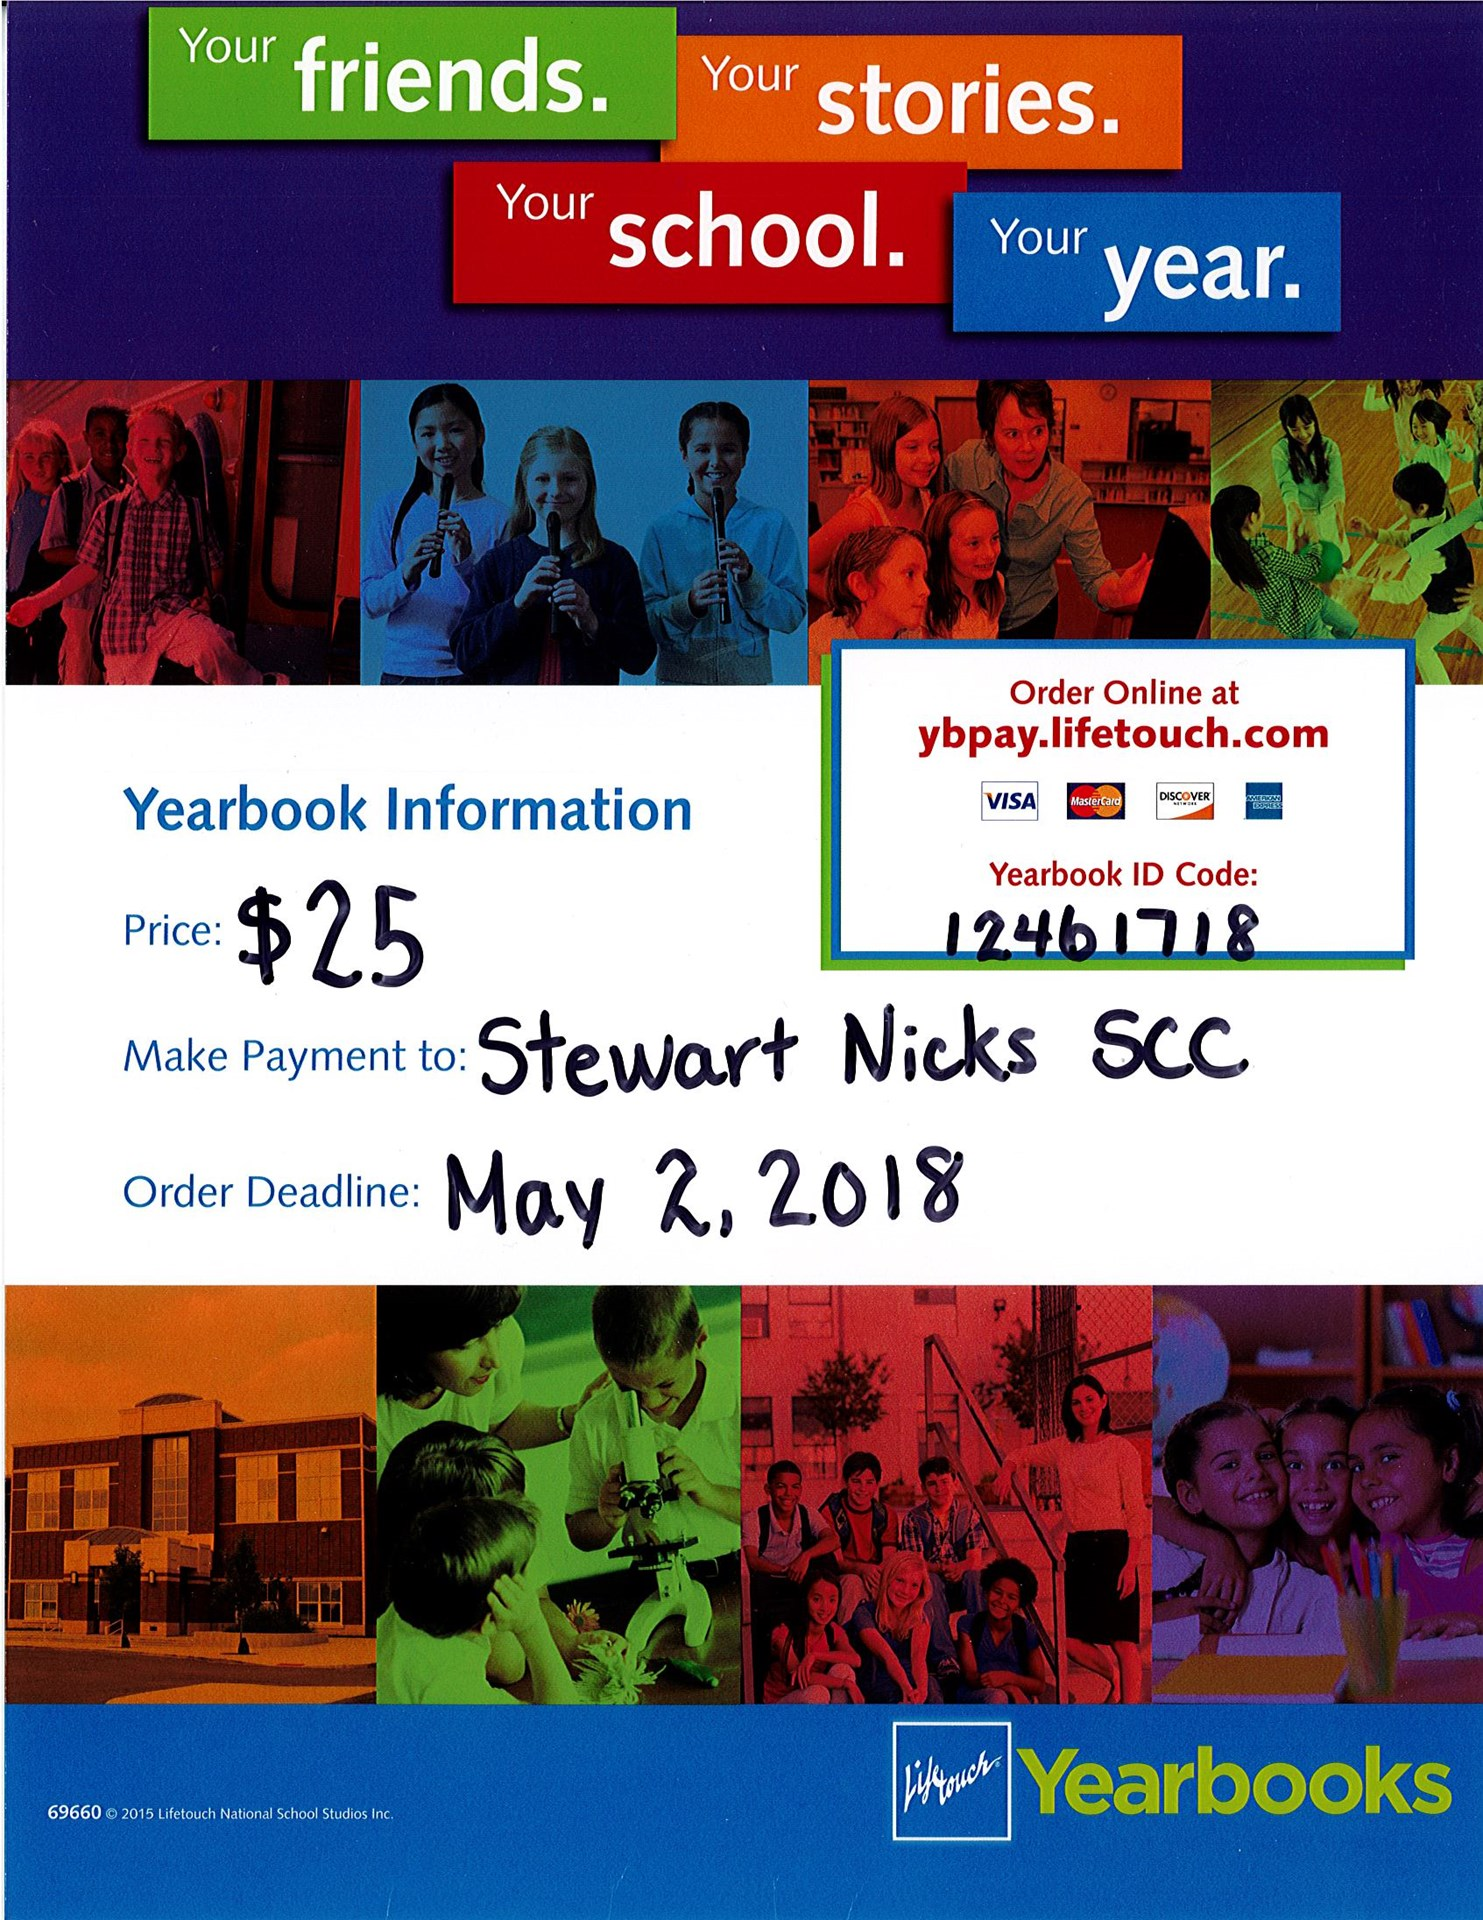 Yearbook orders are due May 2